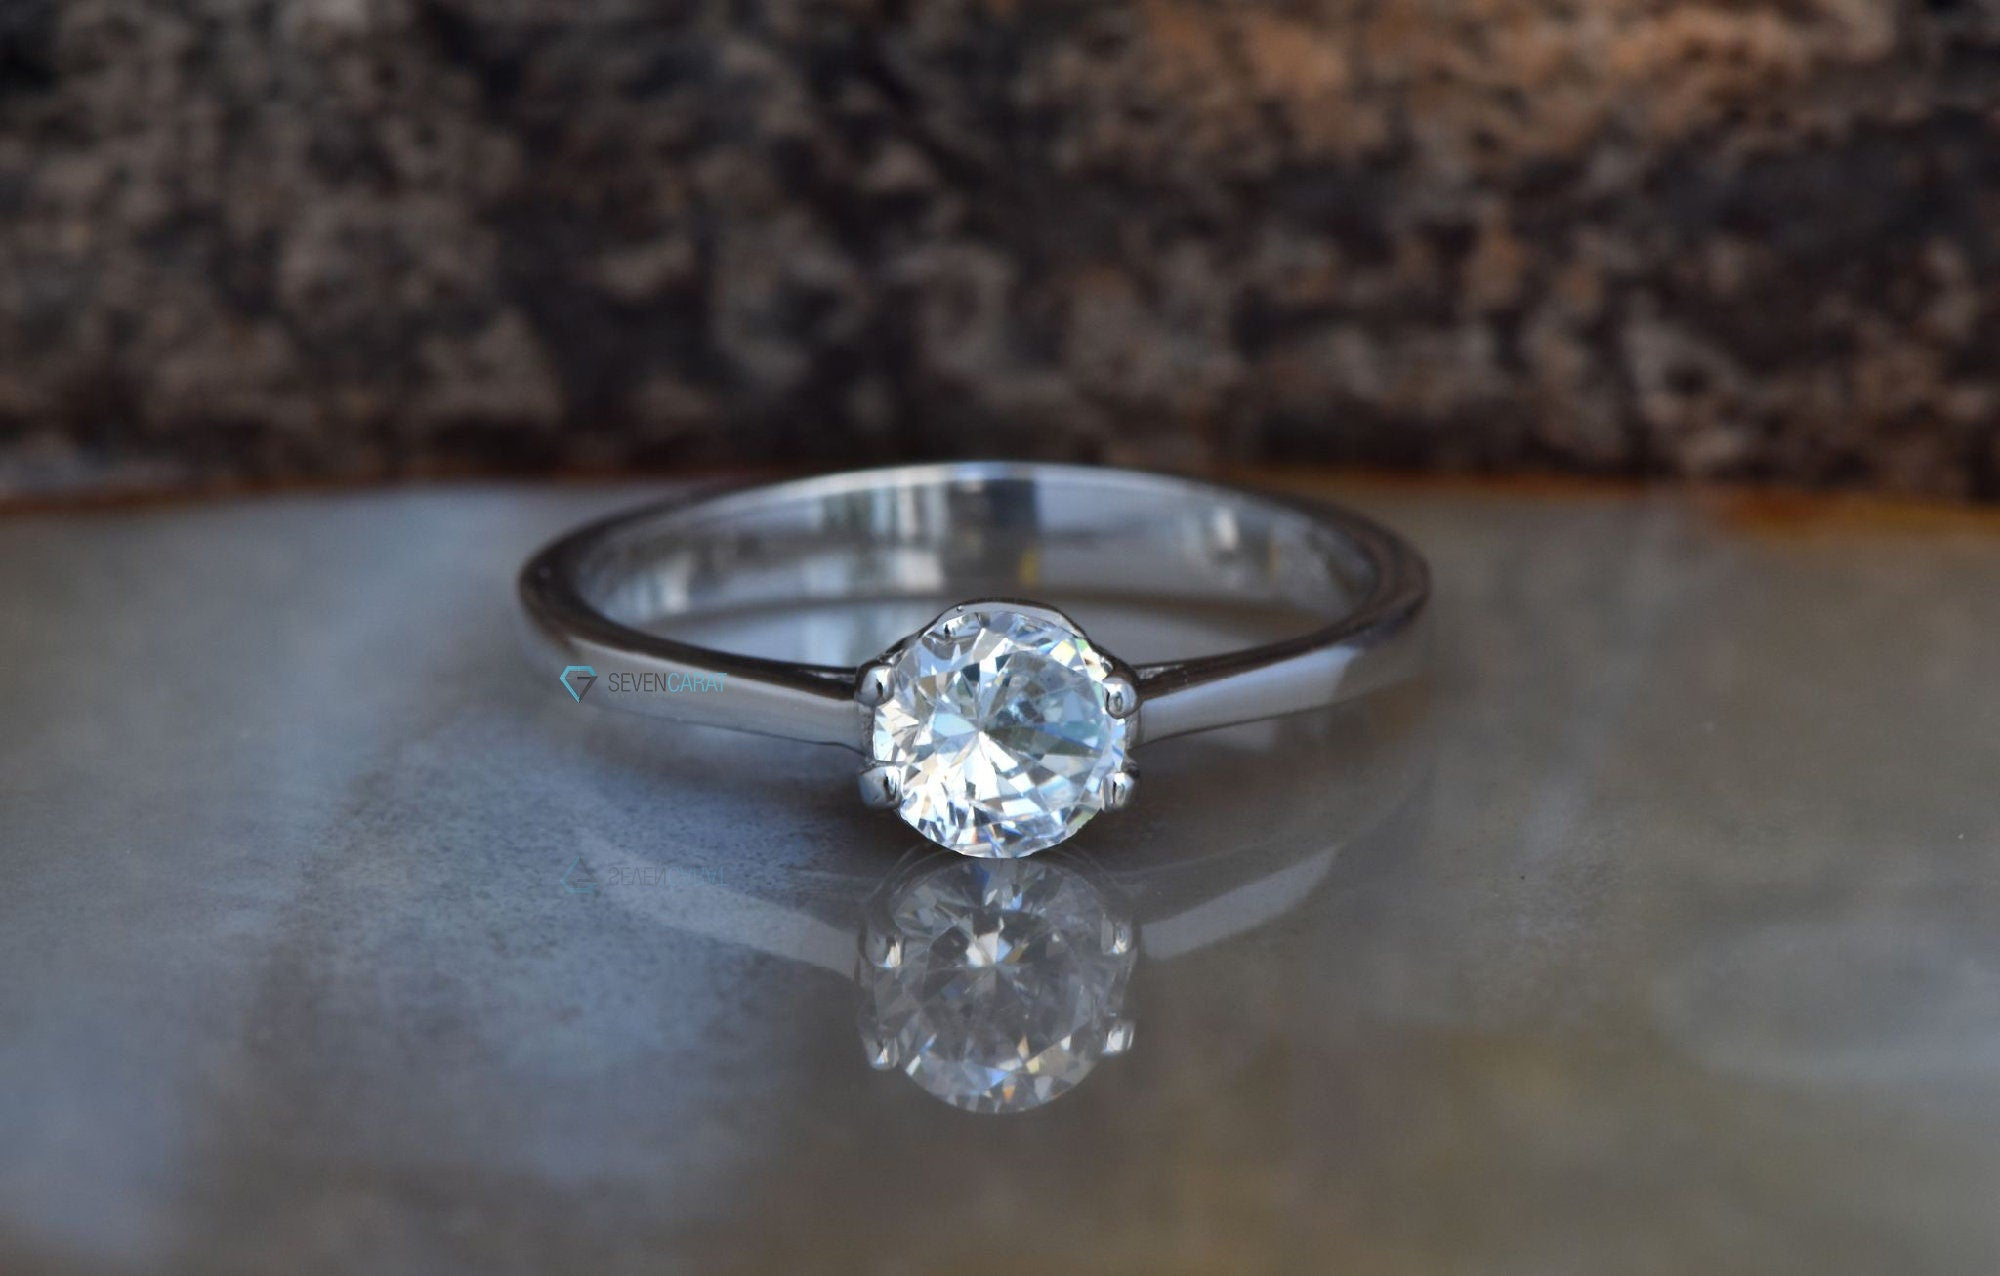 Solitaire diamond ring-Engagement ring-Cluster engagement ring-0.70 ct diamond-4 prong solitaire ring-Promise ring-Gold Solitaire Ring